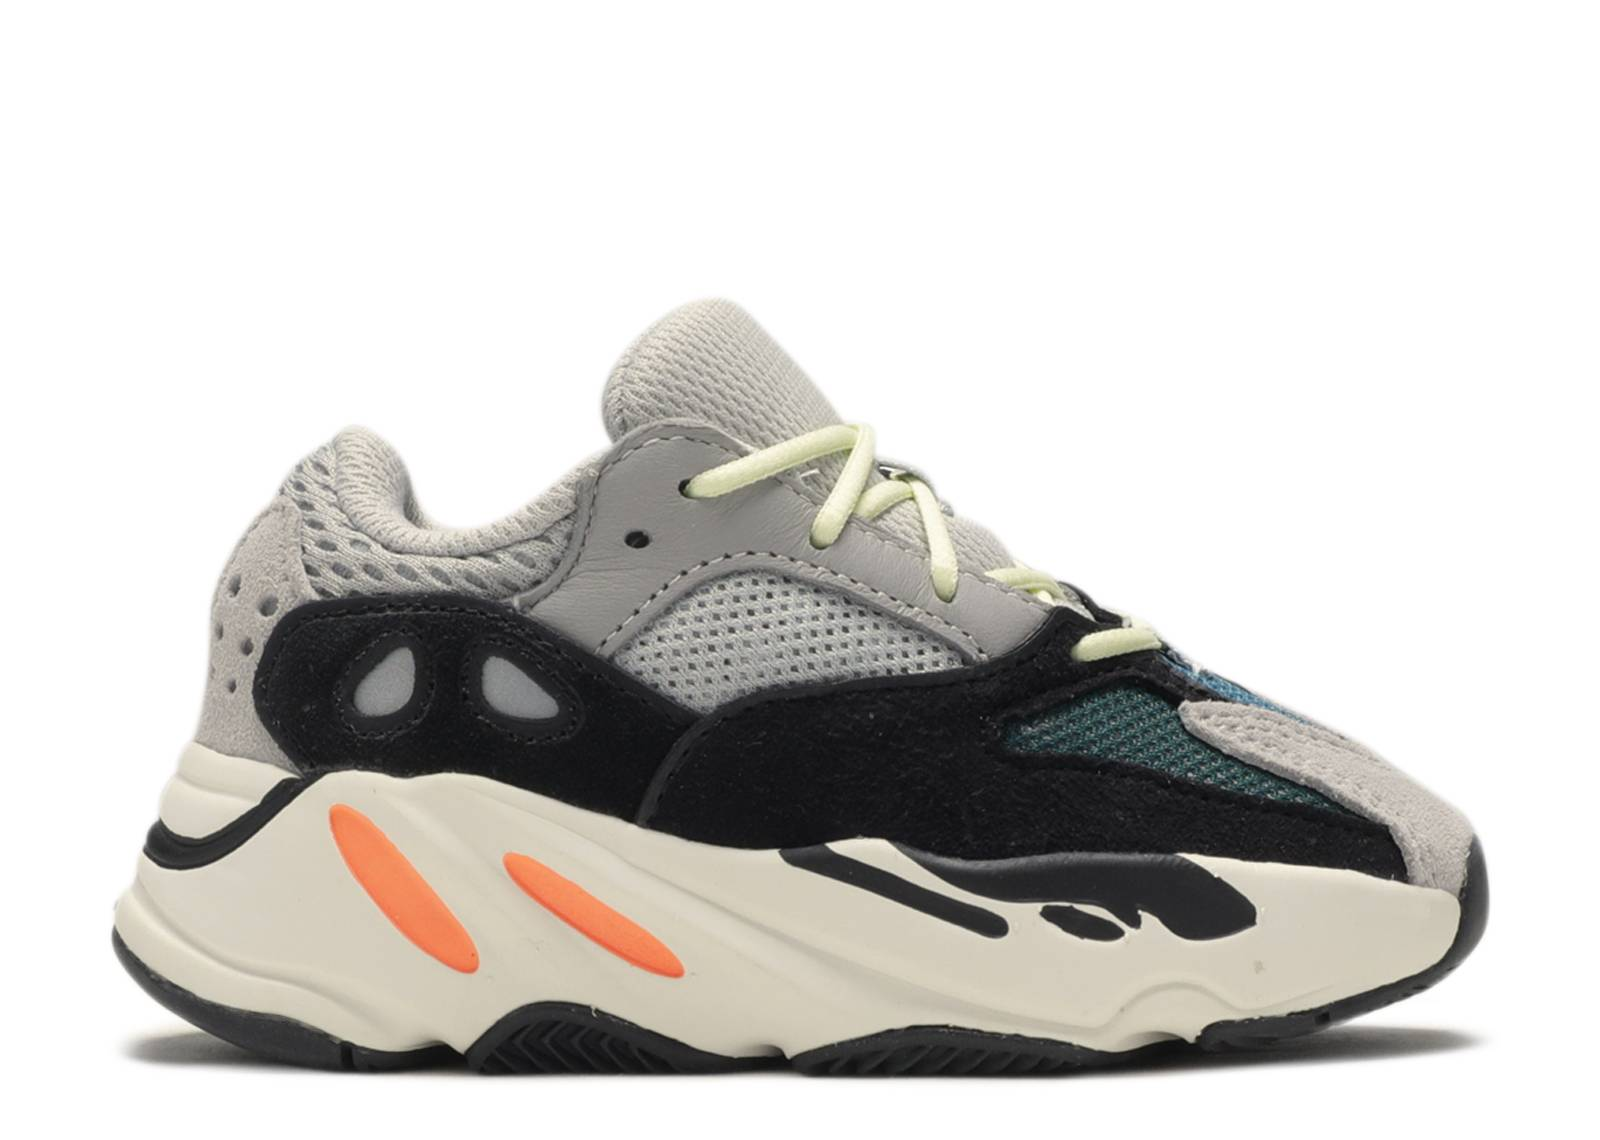 the best attitude 5dafc 11509 Yeezy Boost 700 V2 Infant